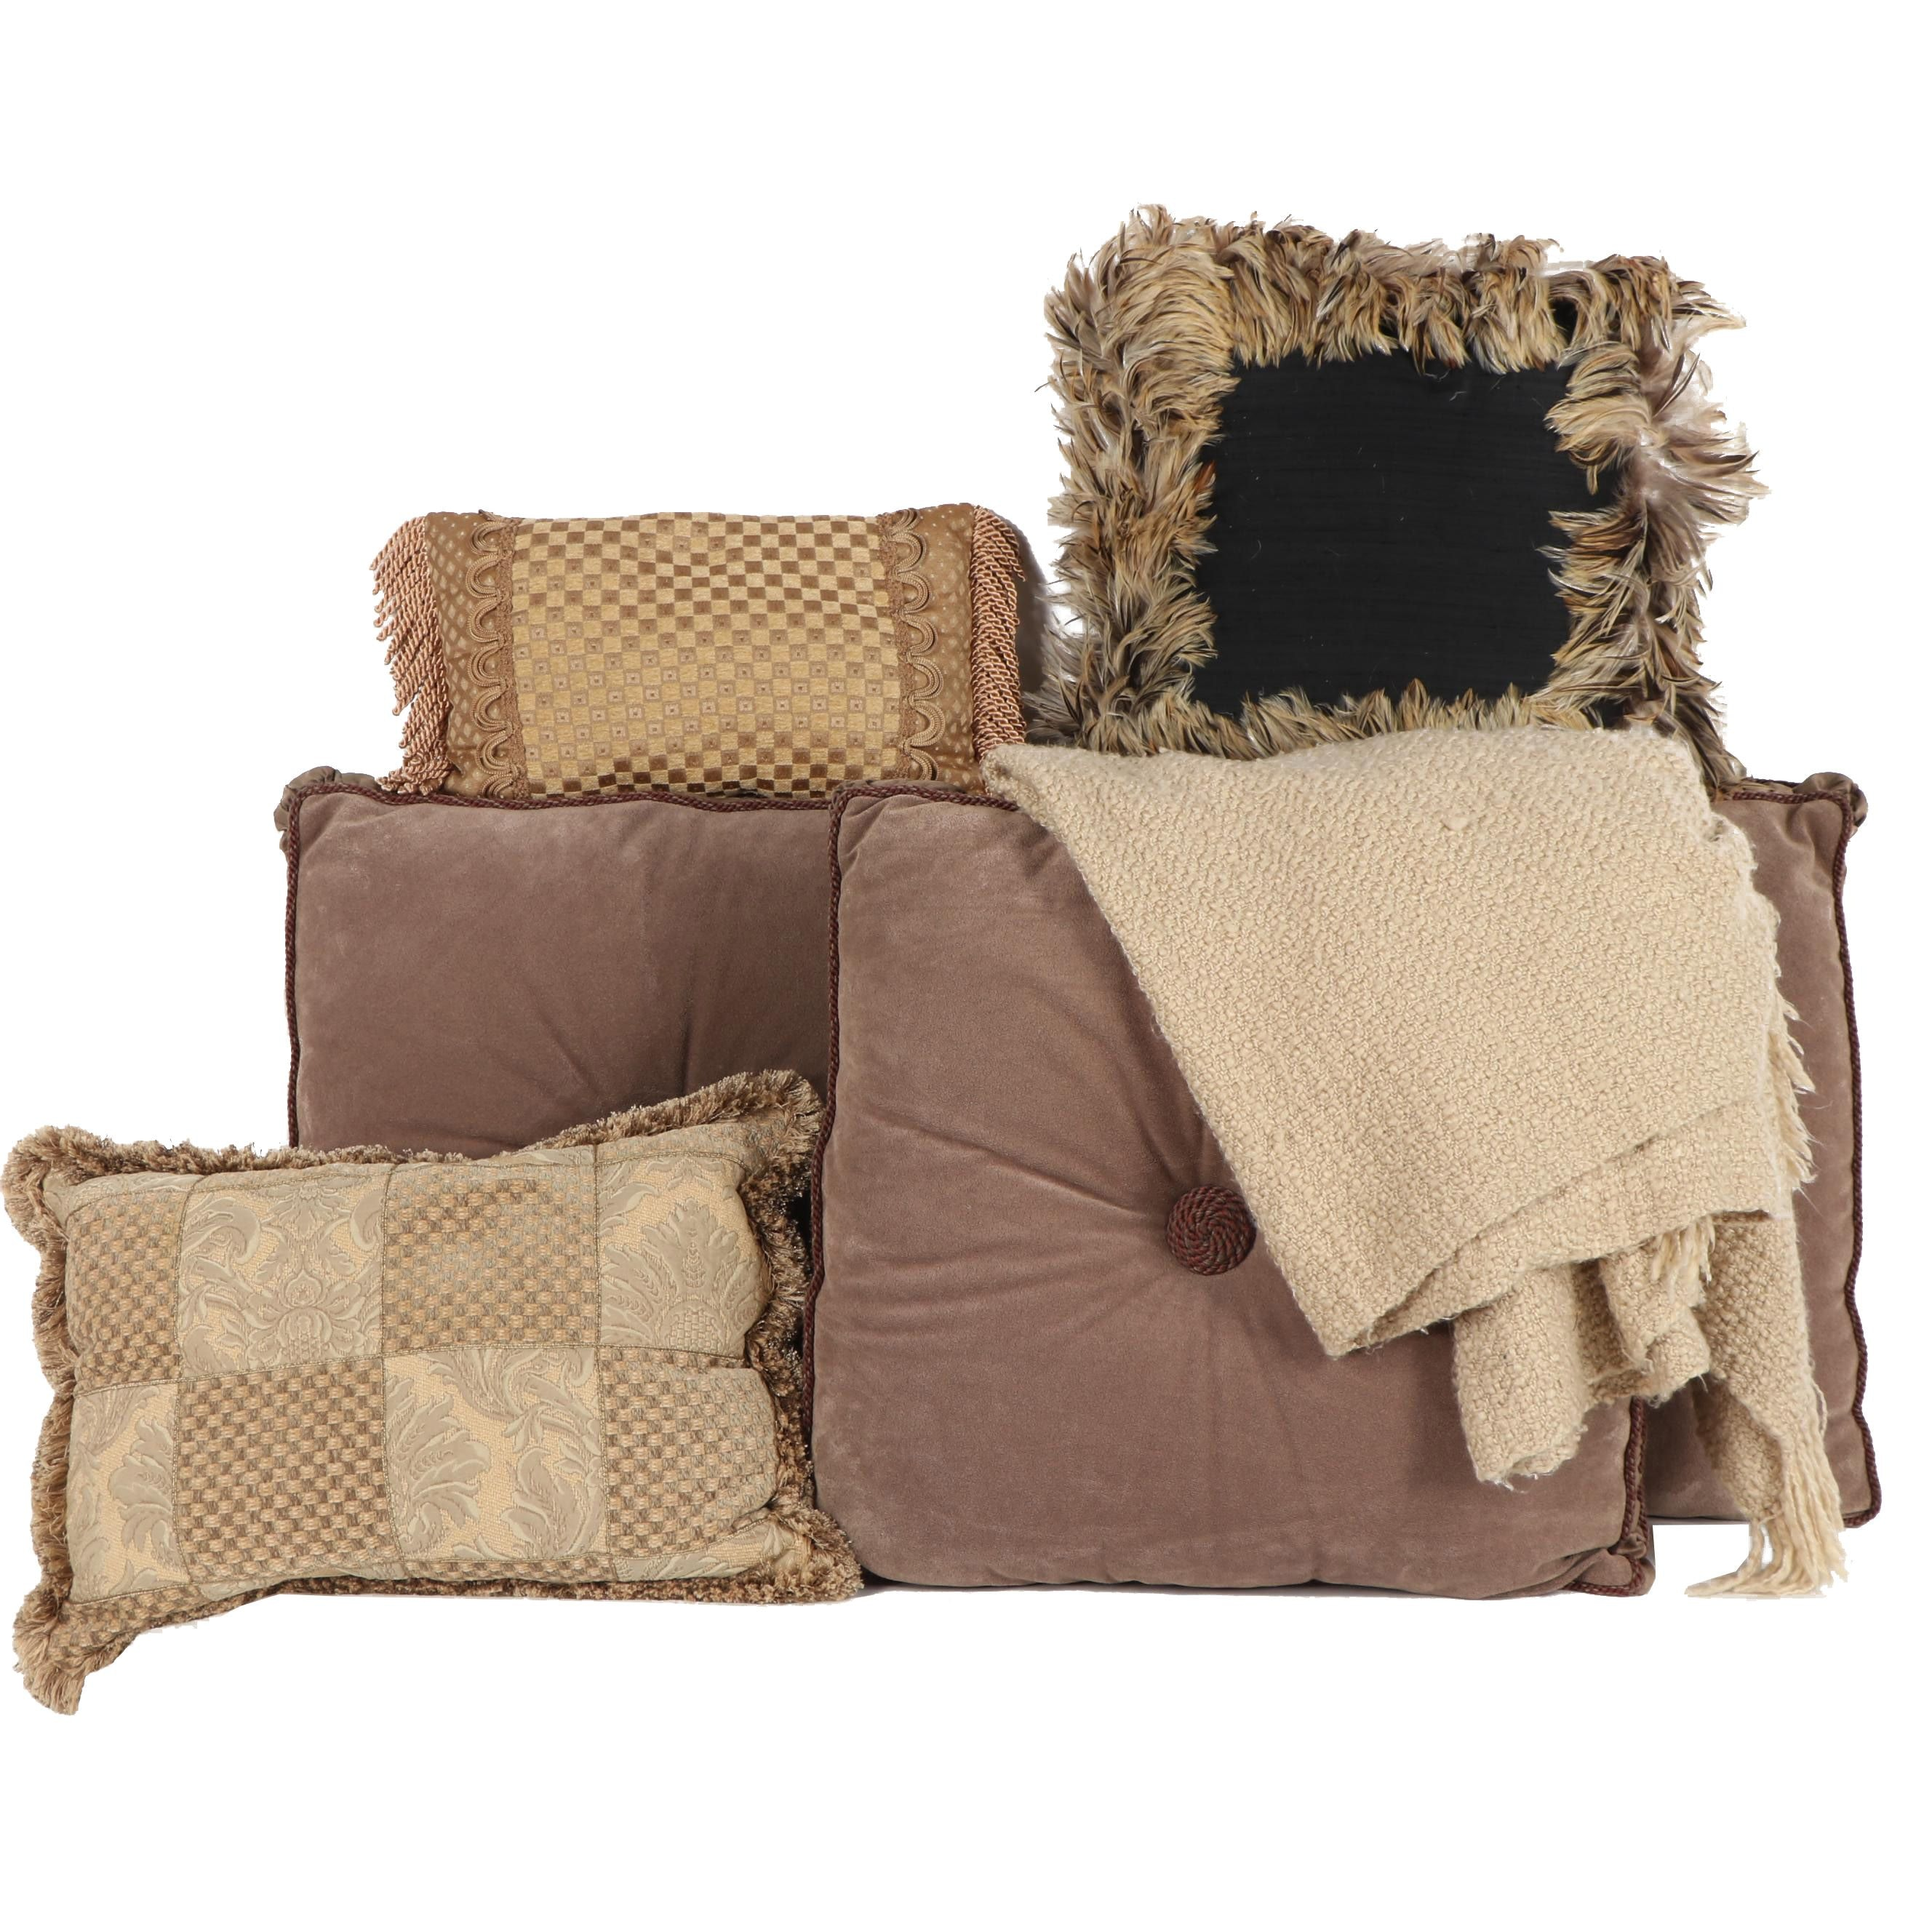 Austin Horn Collection Accent Pillows with Throw Blanket